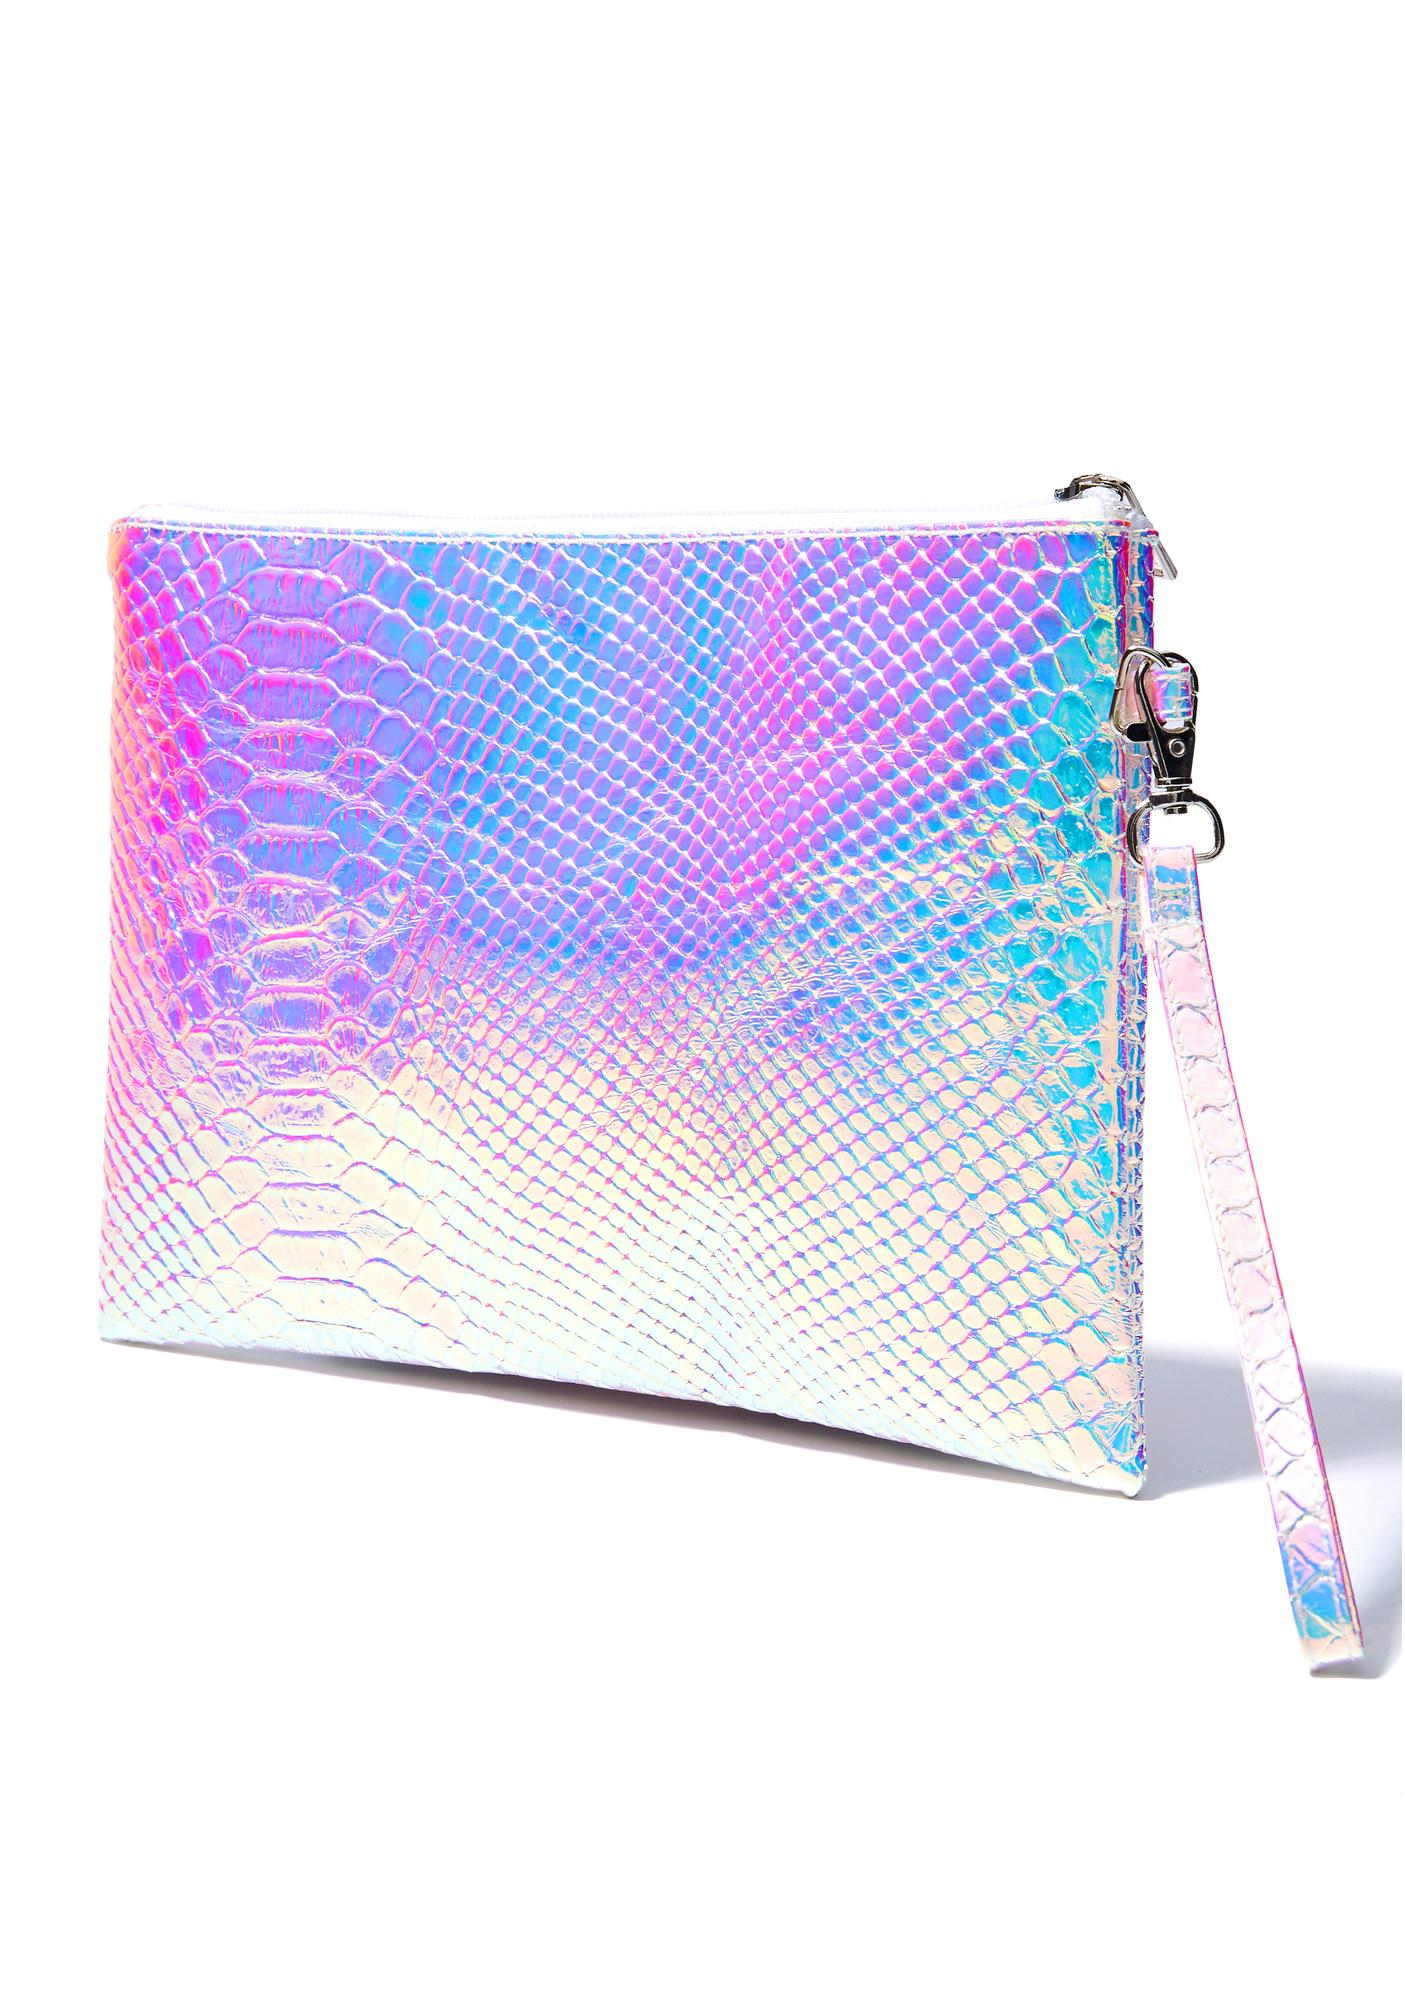 See Ya Later Holographic Clutch